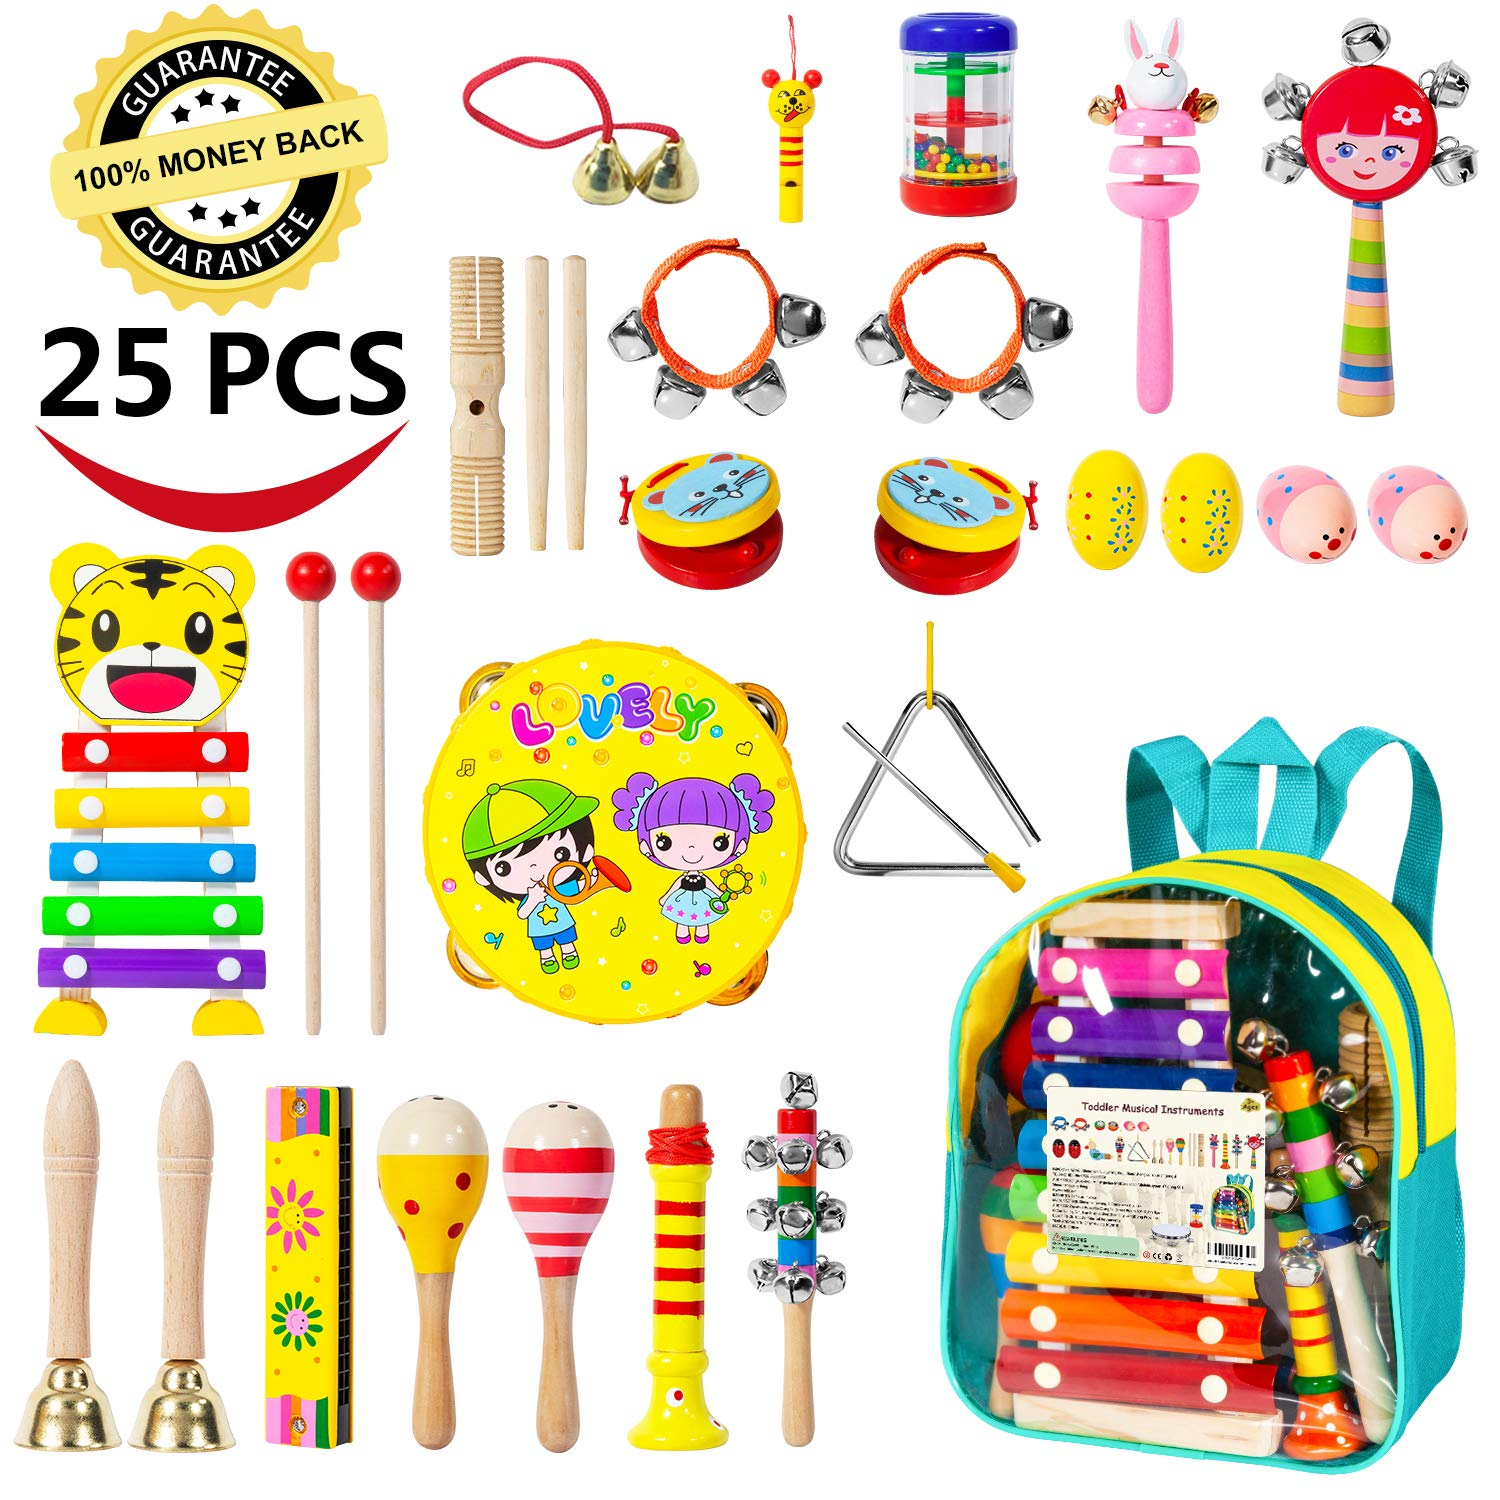 Toddler Musical Instruments-25 PCS 17 Types Wooden Percussion Instruments Toy for Kids Musical Toys for Kids Musical Toys Set for Boys and Girls with Storage Bag